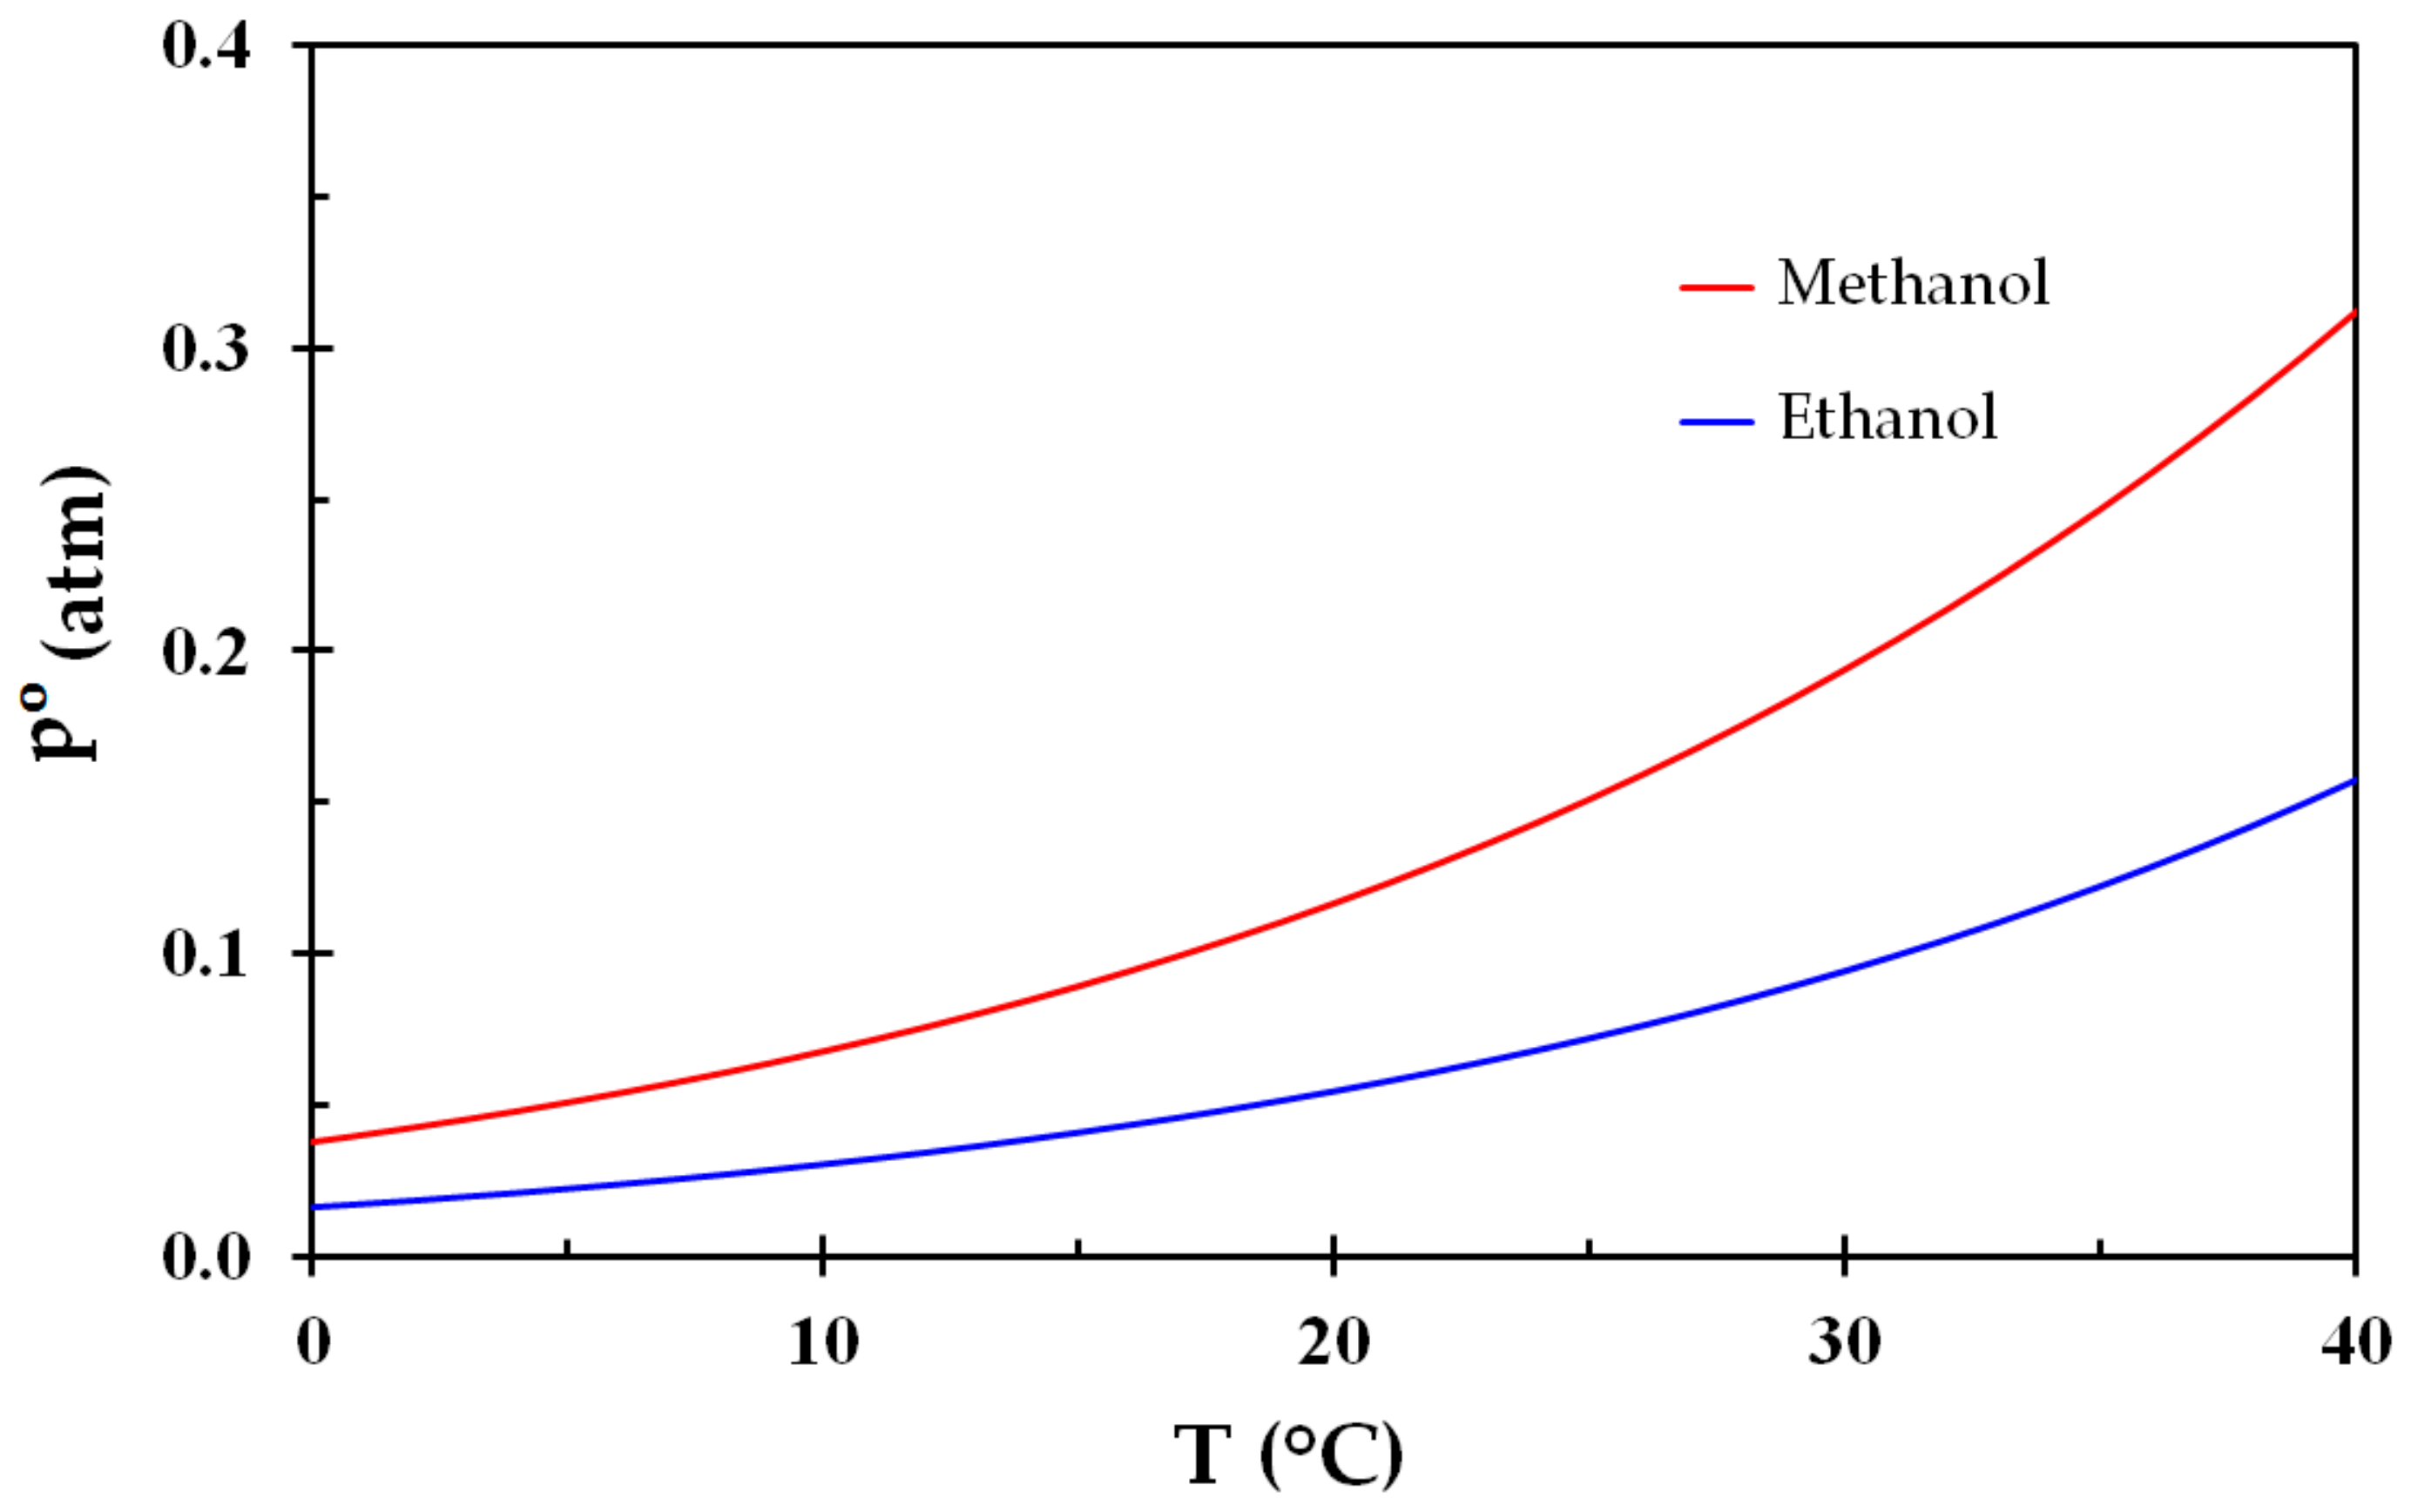 IJERPH | Free Full-Text | Ethanol and Methanol Burn Risks in